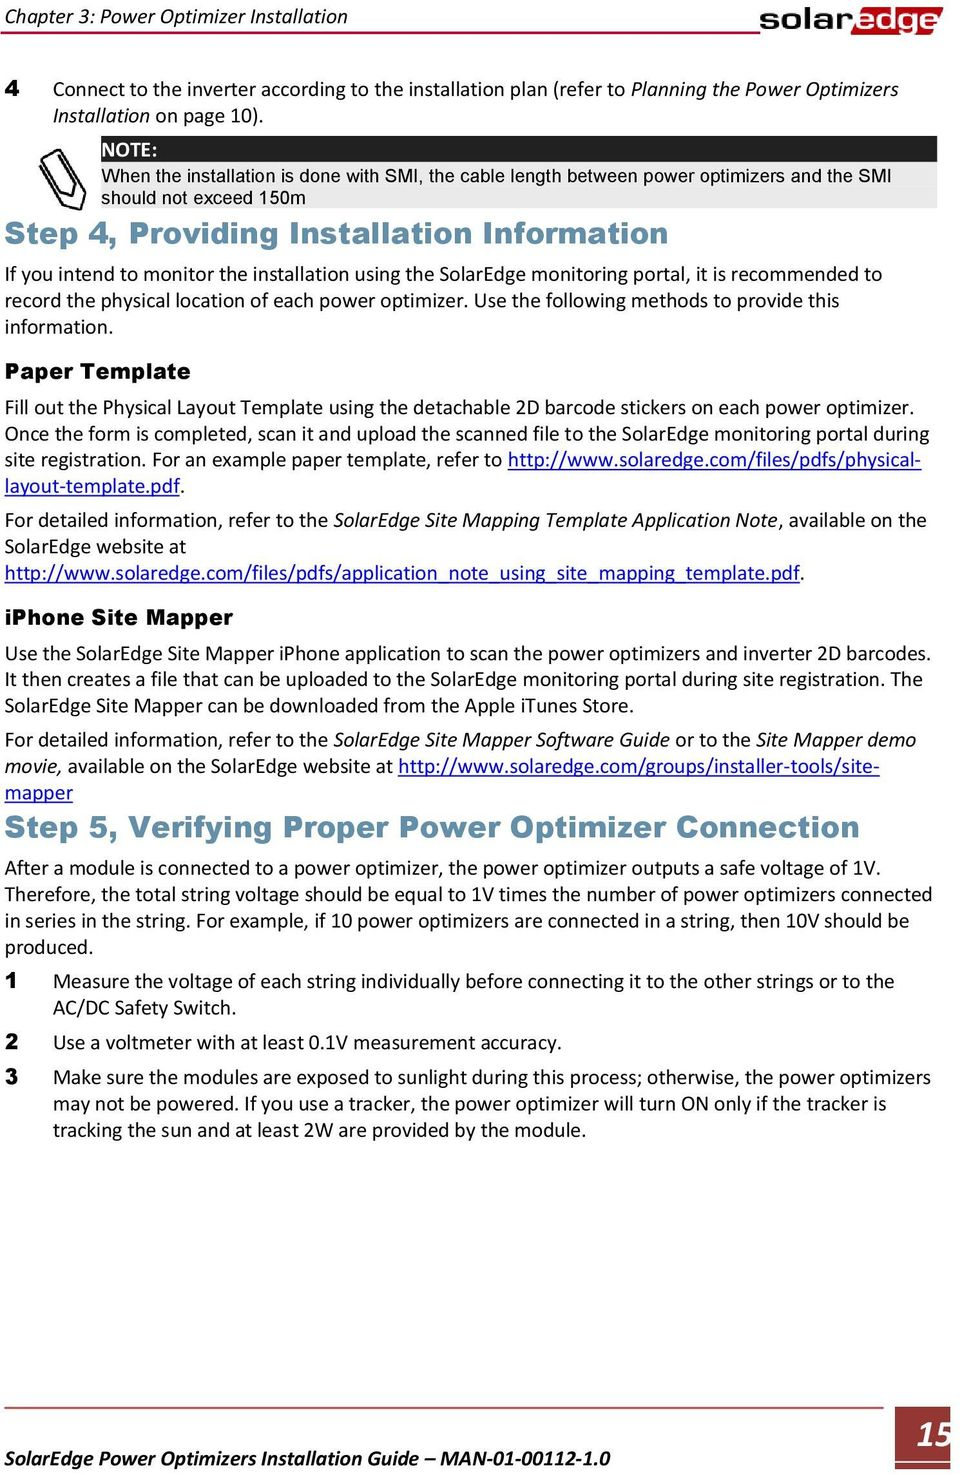 installation using the SolarEdge monitoring portal, it is recommended to record the physical location of each power optimizer. Use the following methods to provide this information.